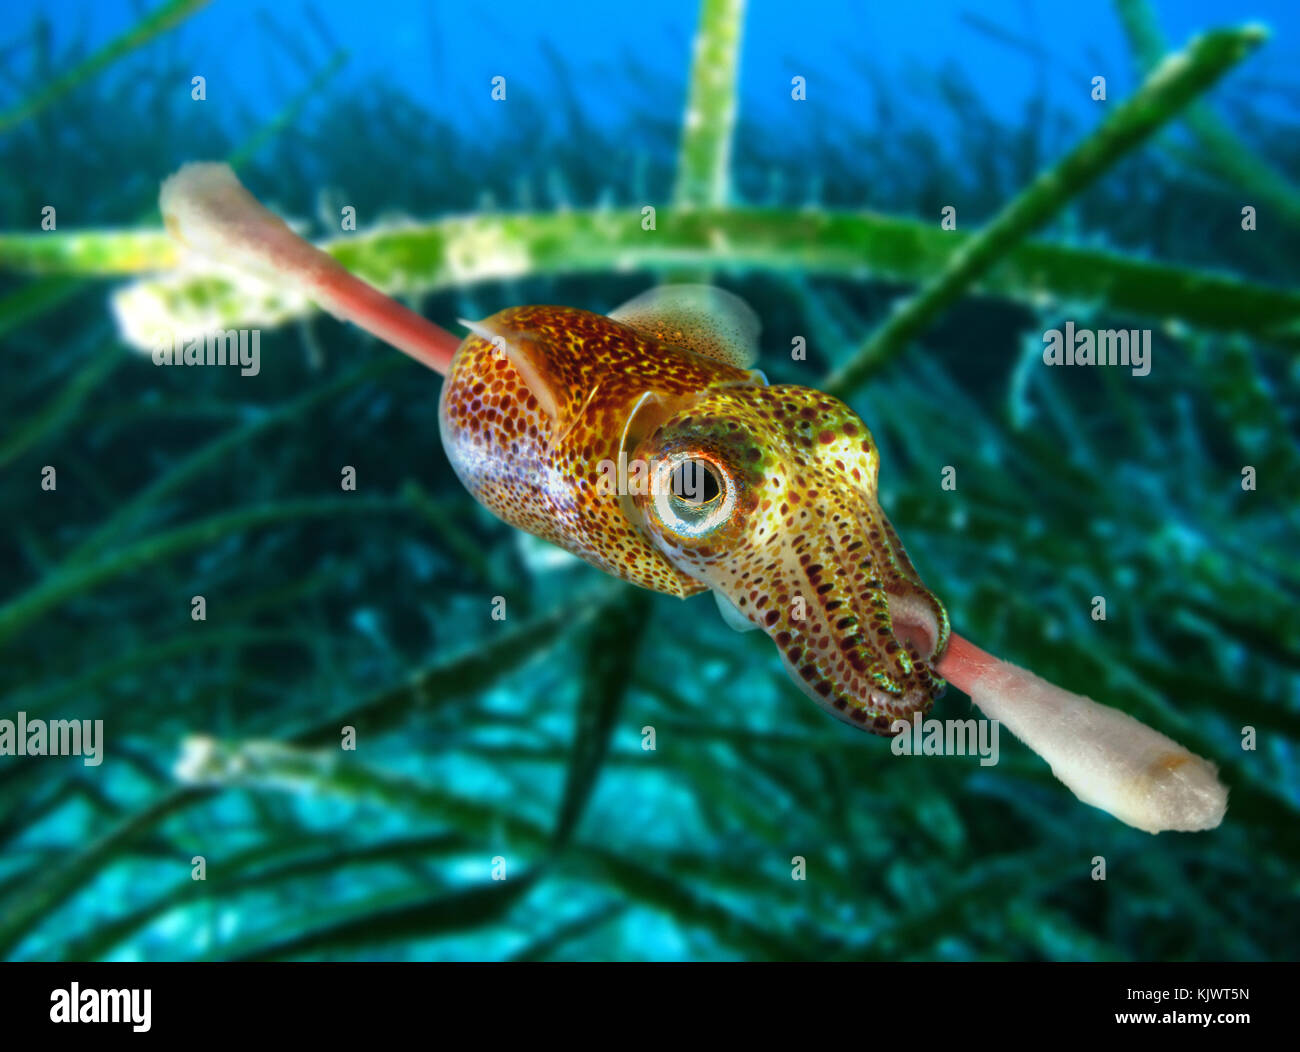 Atlantic bobtail, Sepiola atlantica, latching onto a cotton swab. This small squid feed usually on young fish and - Stock Image